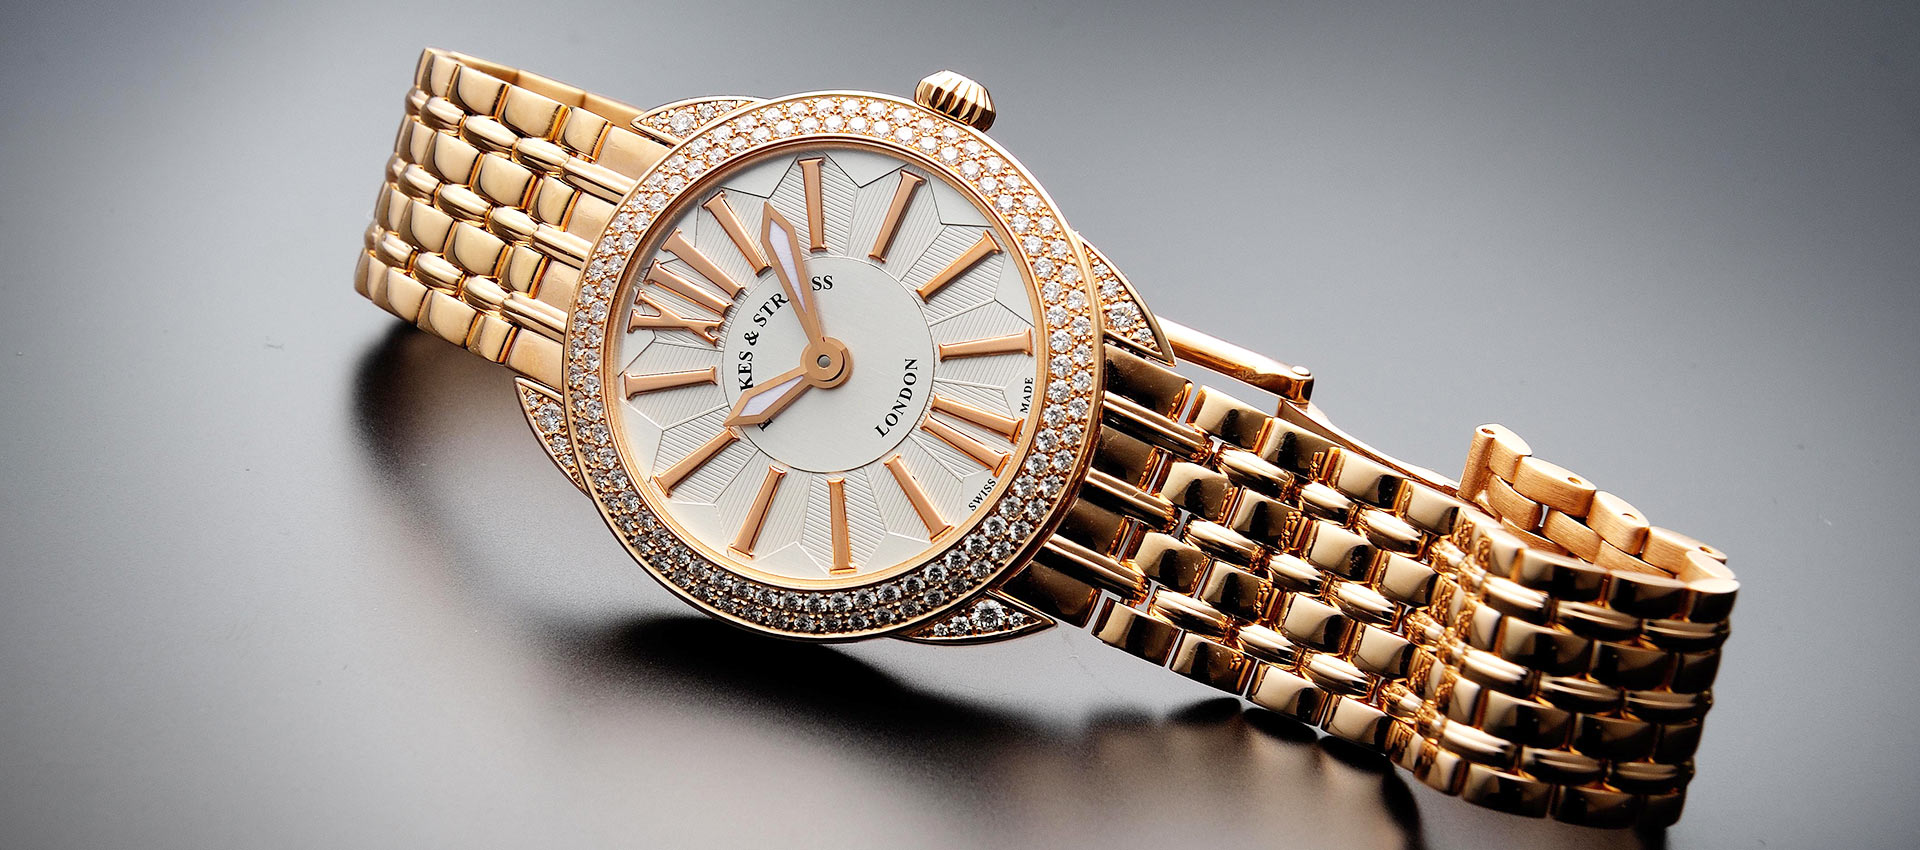 Piccadilly Renaissance Swiss made watch for her and him